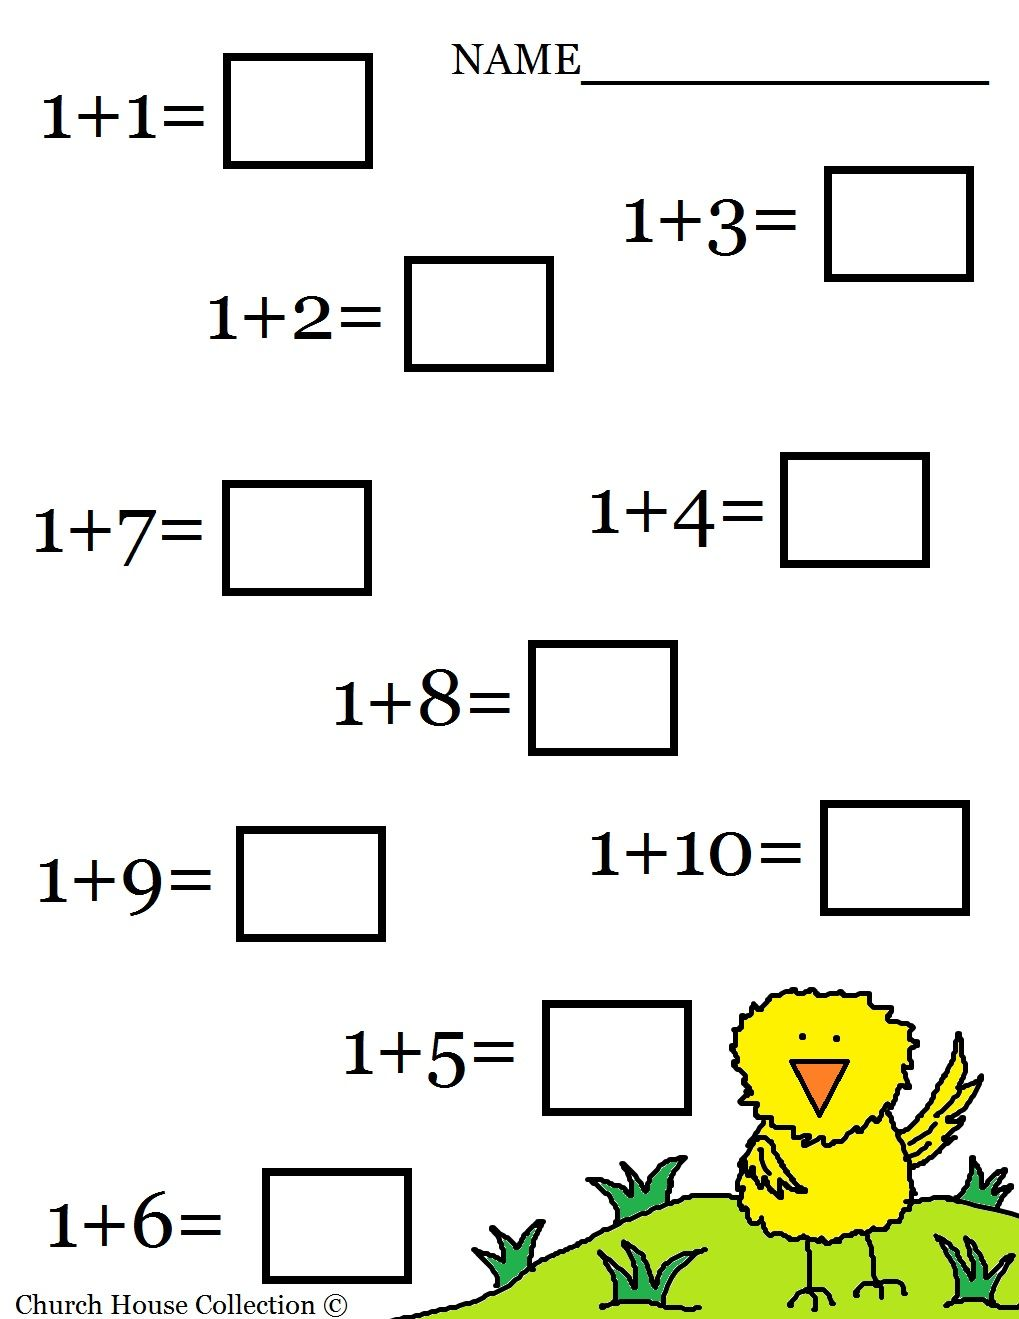 Aldiablosus  Surprising  Images About Worksheets  Math On Pinterest  Math Sheets  With Great  Images About Worksheets  Math On Pinterest  Math Sheets Math Worksheets For Kindergarten And Simple Addition With Comely Solving Systems Worksheet Also Dividing Fraction Worksheets In Addition Science Worksheets Ks And Writing Balanced Chemical Equations Worksheet Answers As Well As Compound Worksheets Additionally Possessive Adjectives And Possessive Pronouns Worksheets Pdf From Pinterestcom With Aldiablosus  Great  Images About Worksheets  Math On Pinterest  Math Sheets  With Comely  Images About Worksheets  Math On Pinterest  Math Sheets Math Worksheets For Kindergarten And Simple Addition And Surprising Solving Systems Worksheet Also Dividing Fraction Worksheets In Addition Science Worksheets Ks From Pinterestcom